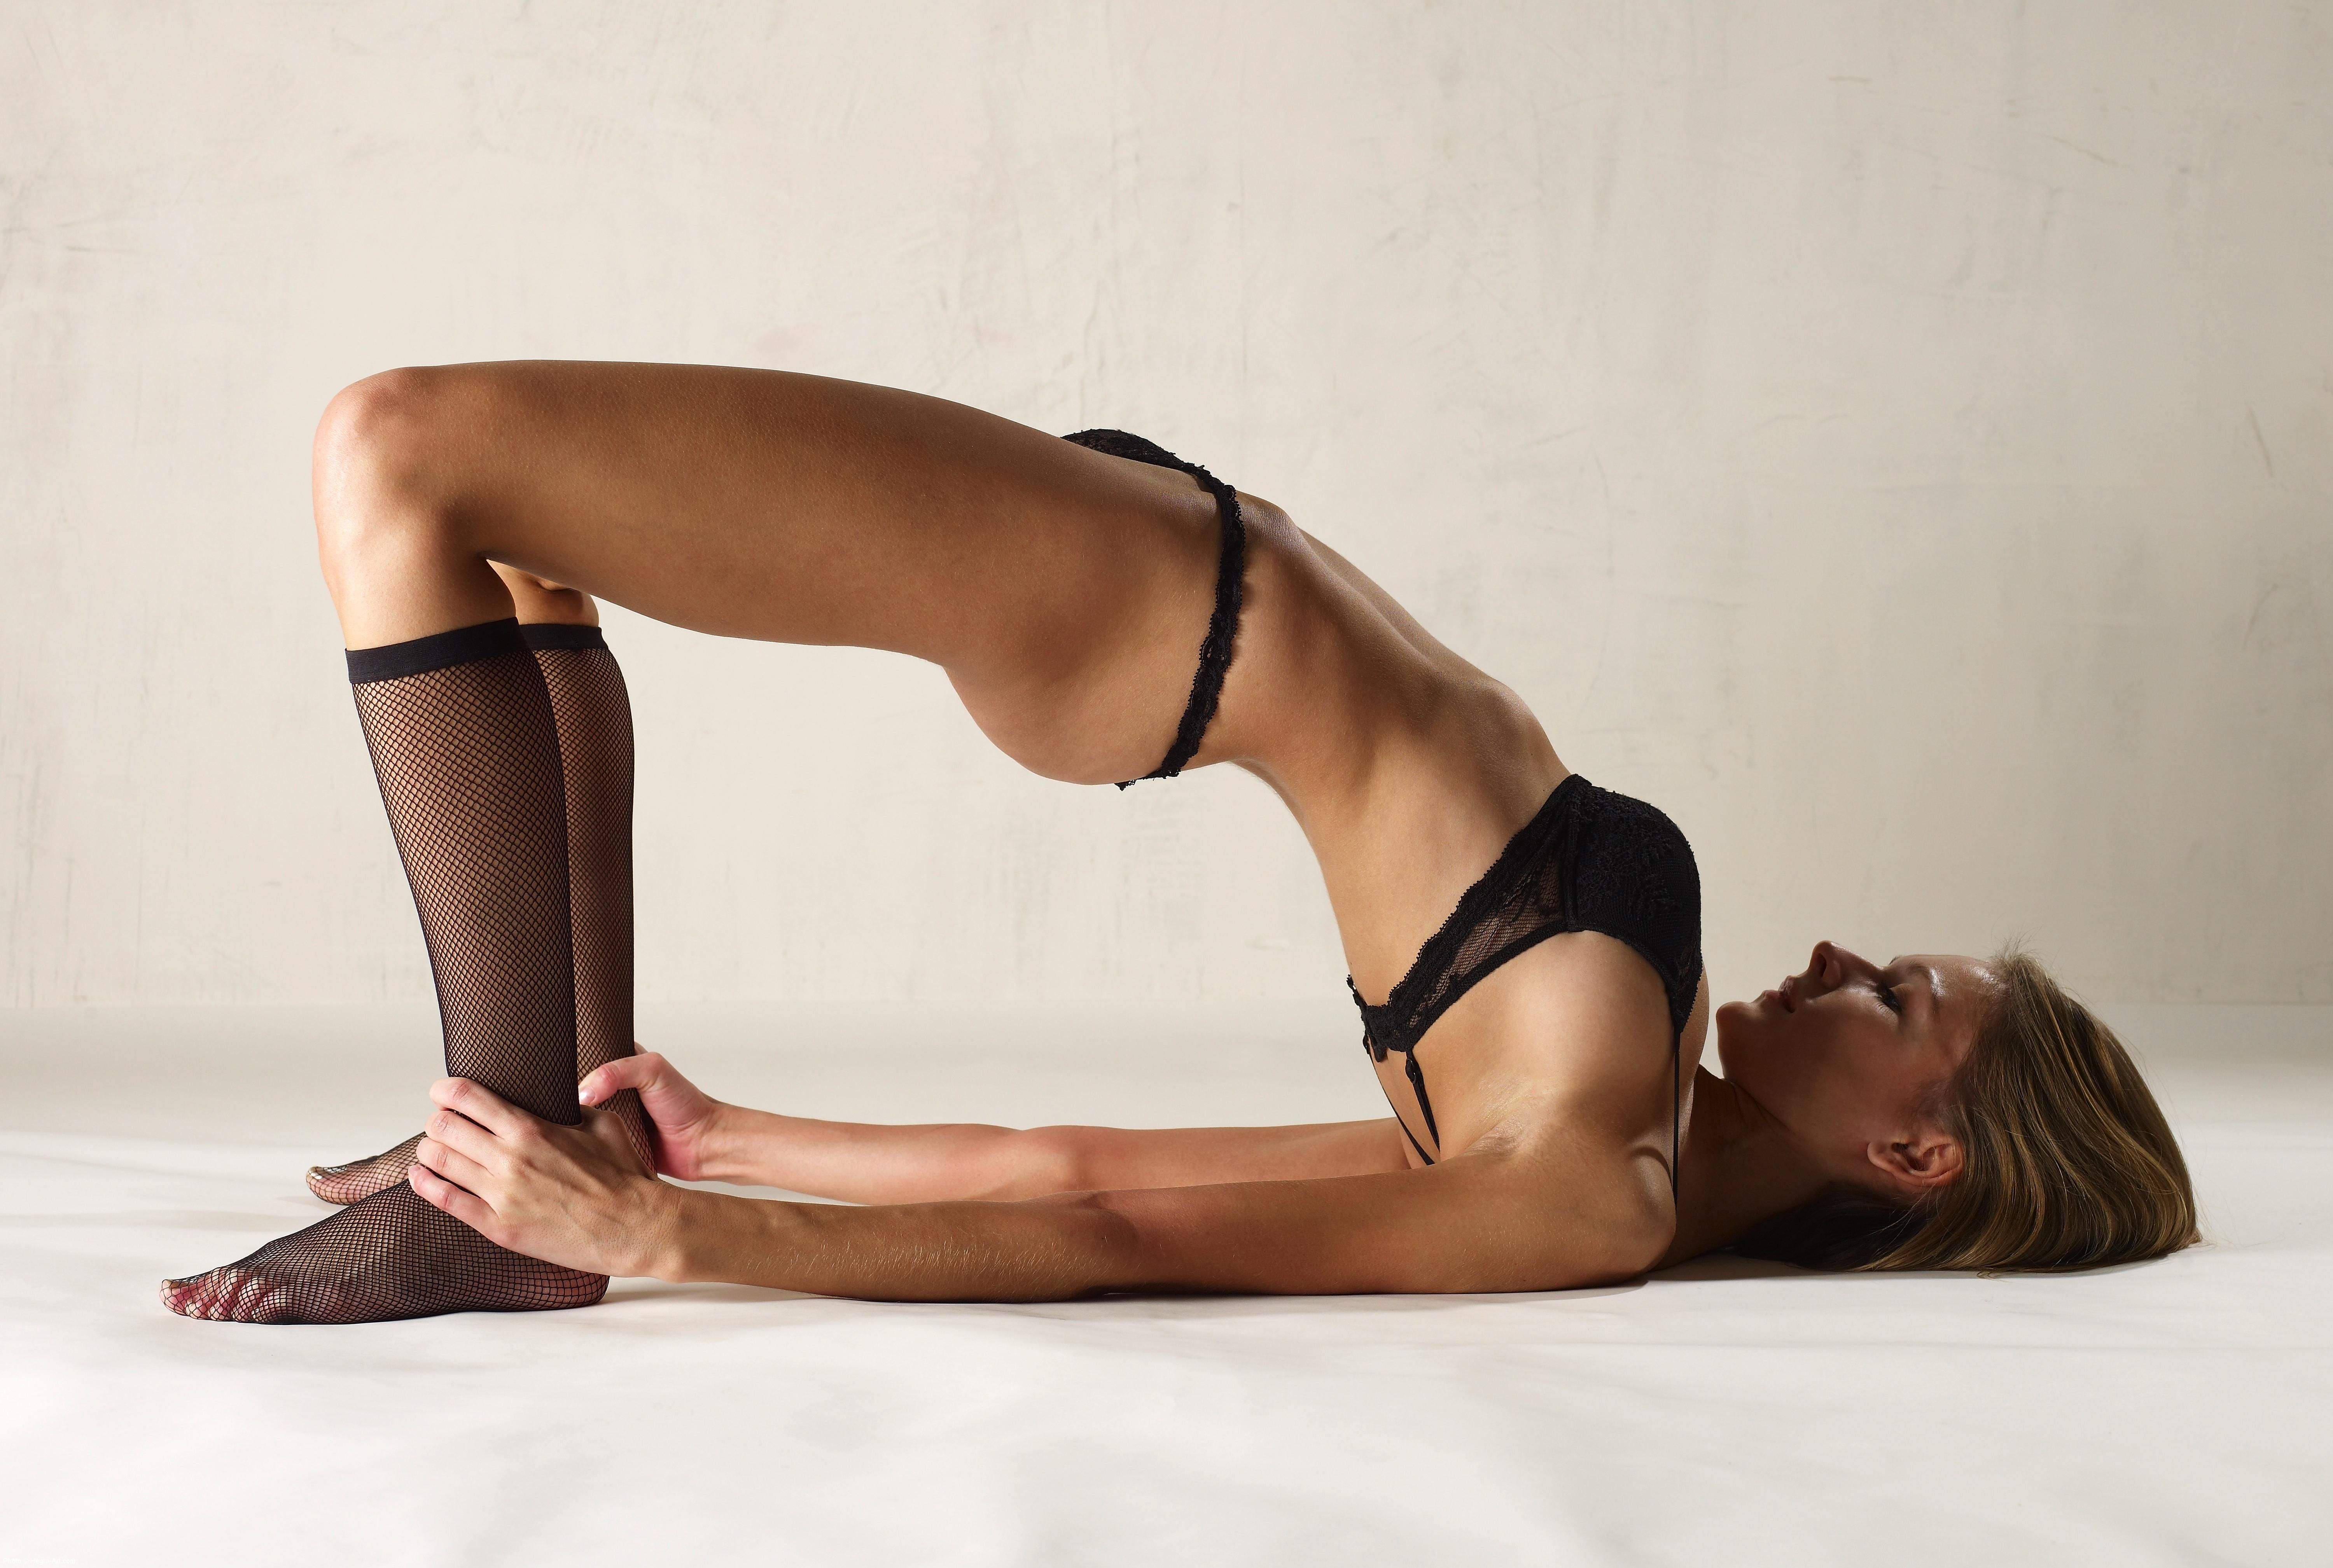 Have You Ever Seen Nude Acro Yoga Now Is Your Chance At